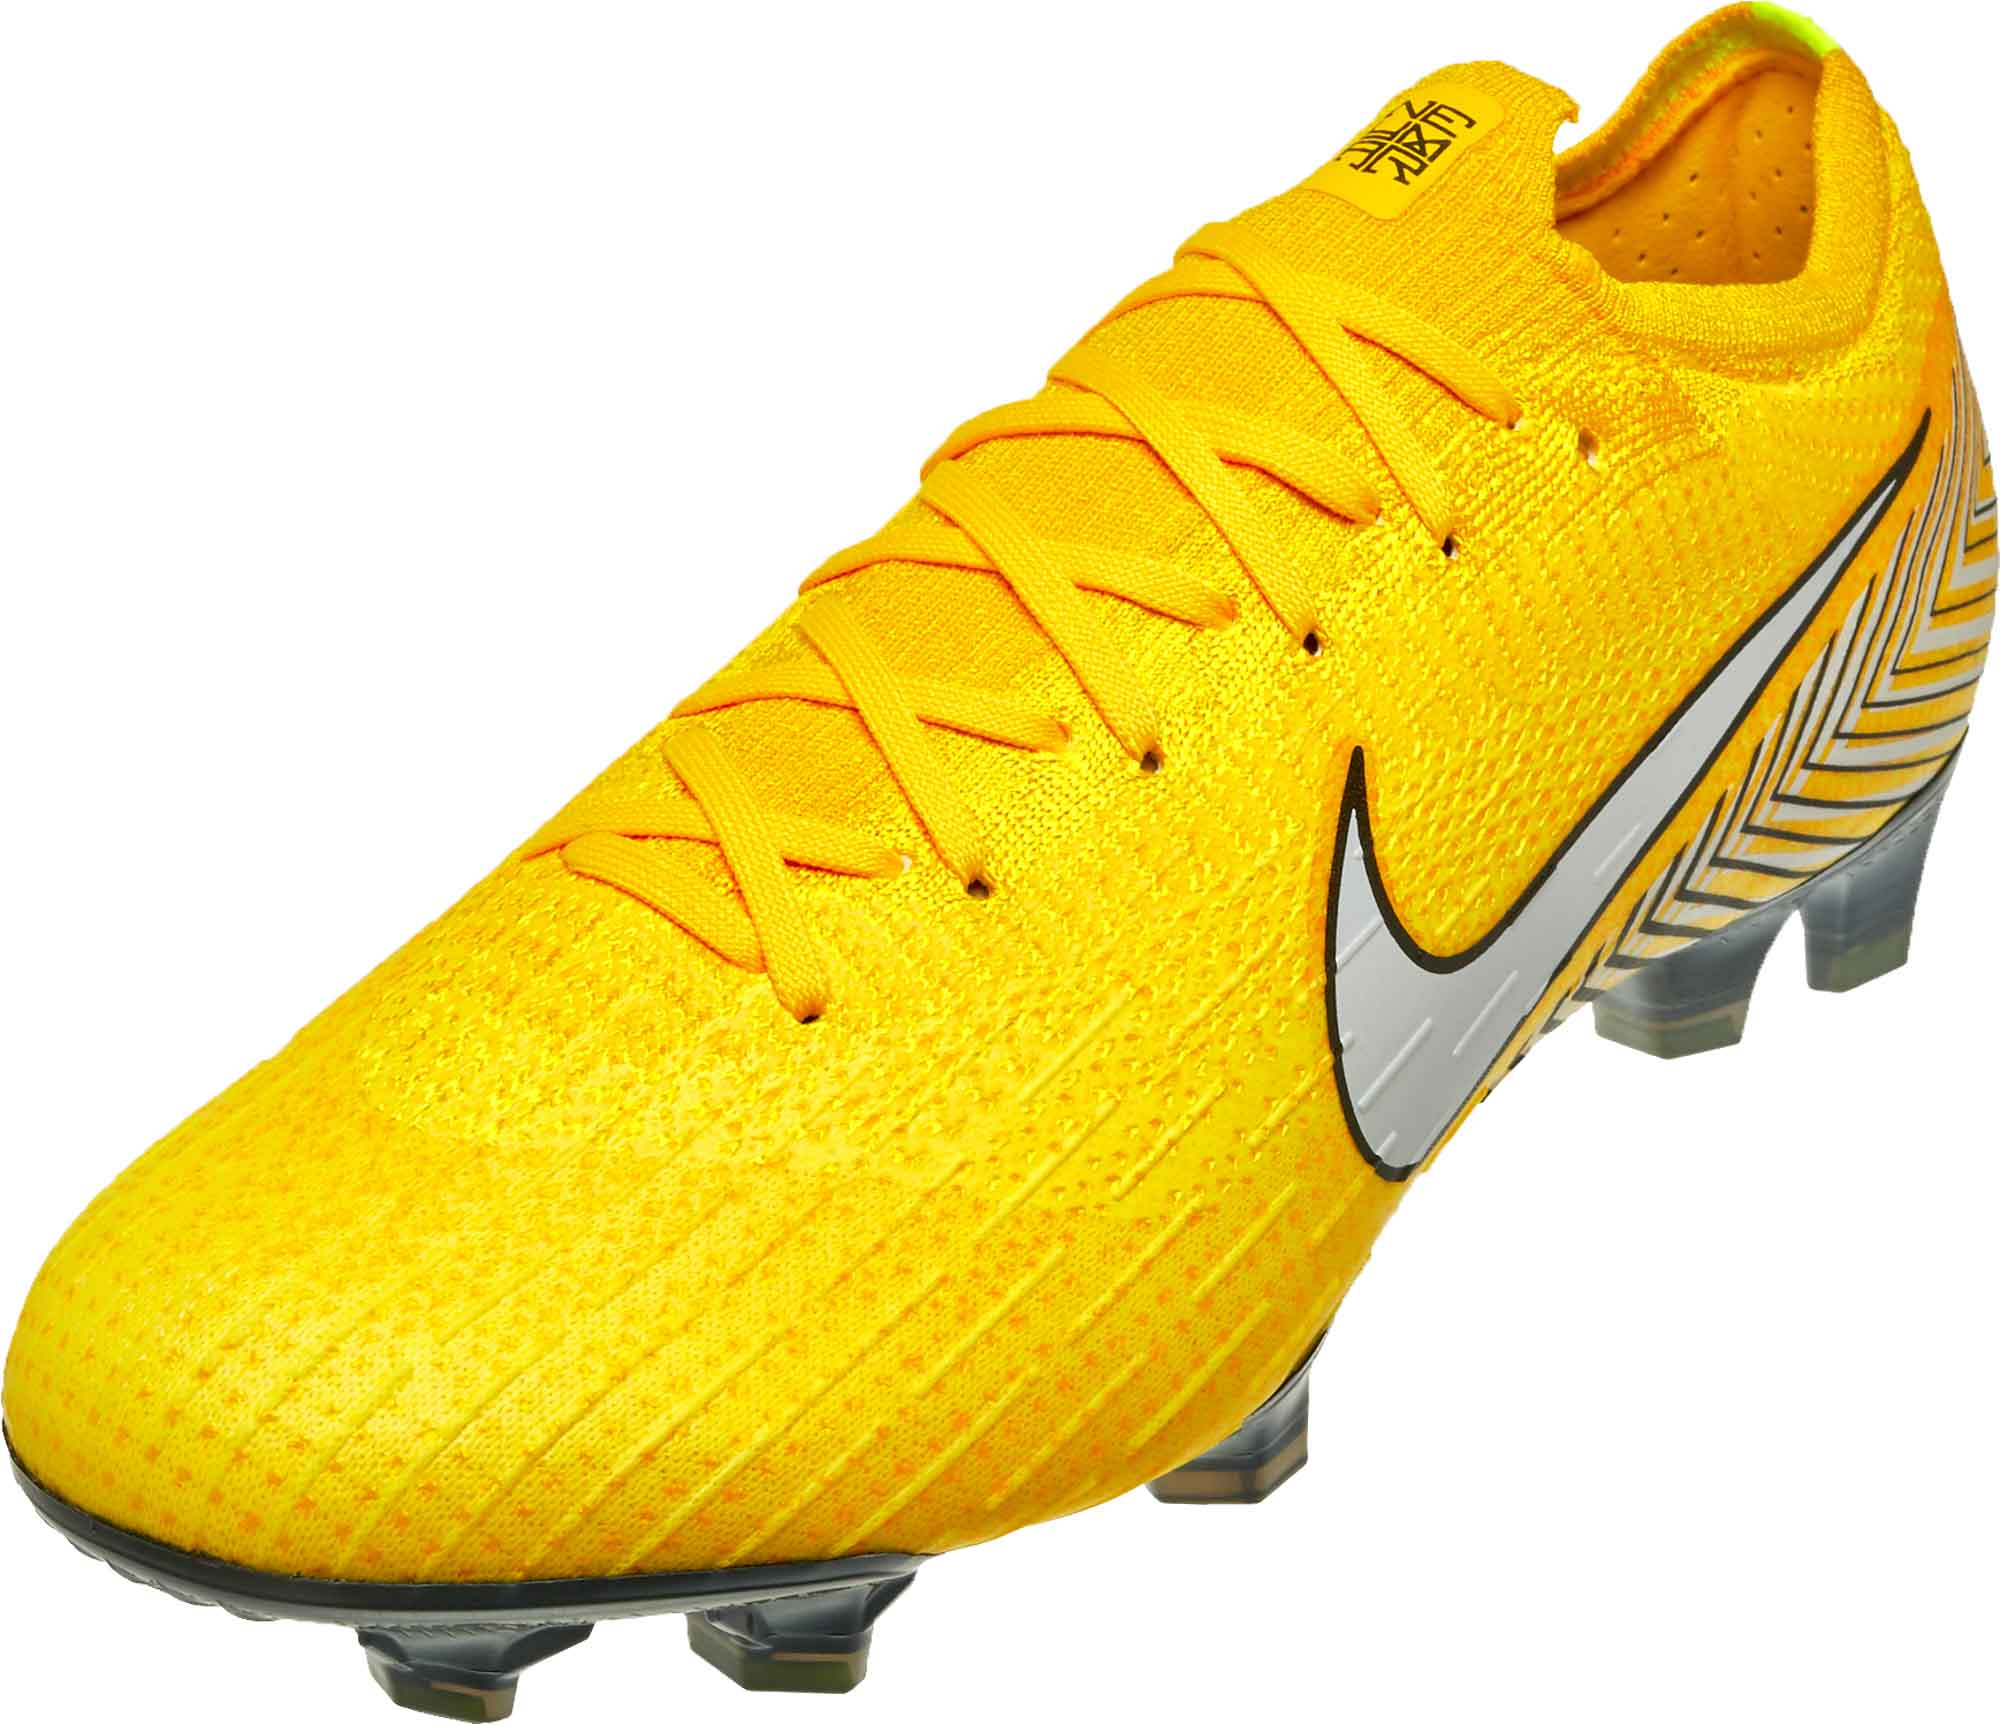 f481dda68 Nike Neymar Vapor 12 Elite FG – Amarillo White Dynamic Yellow Black